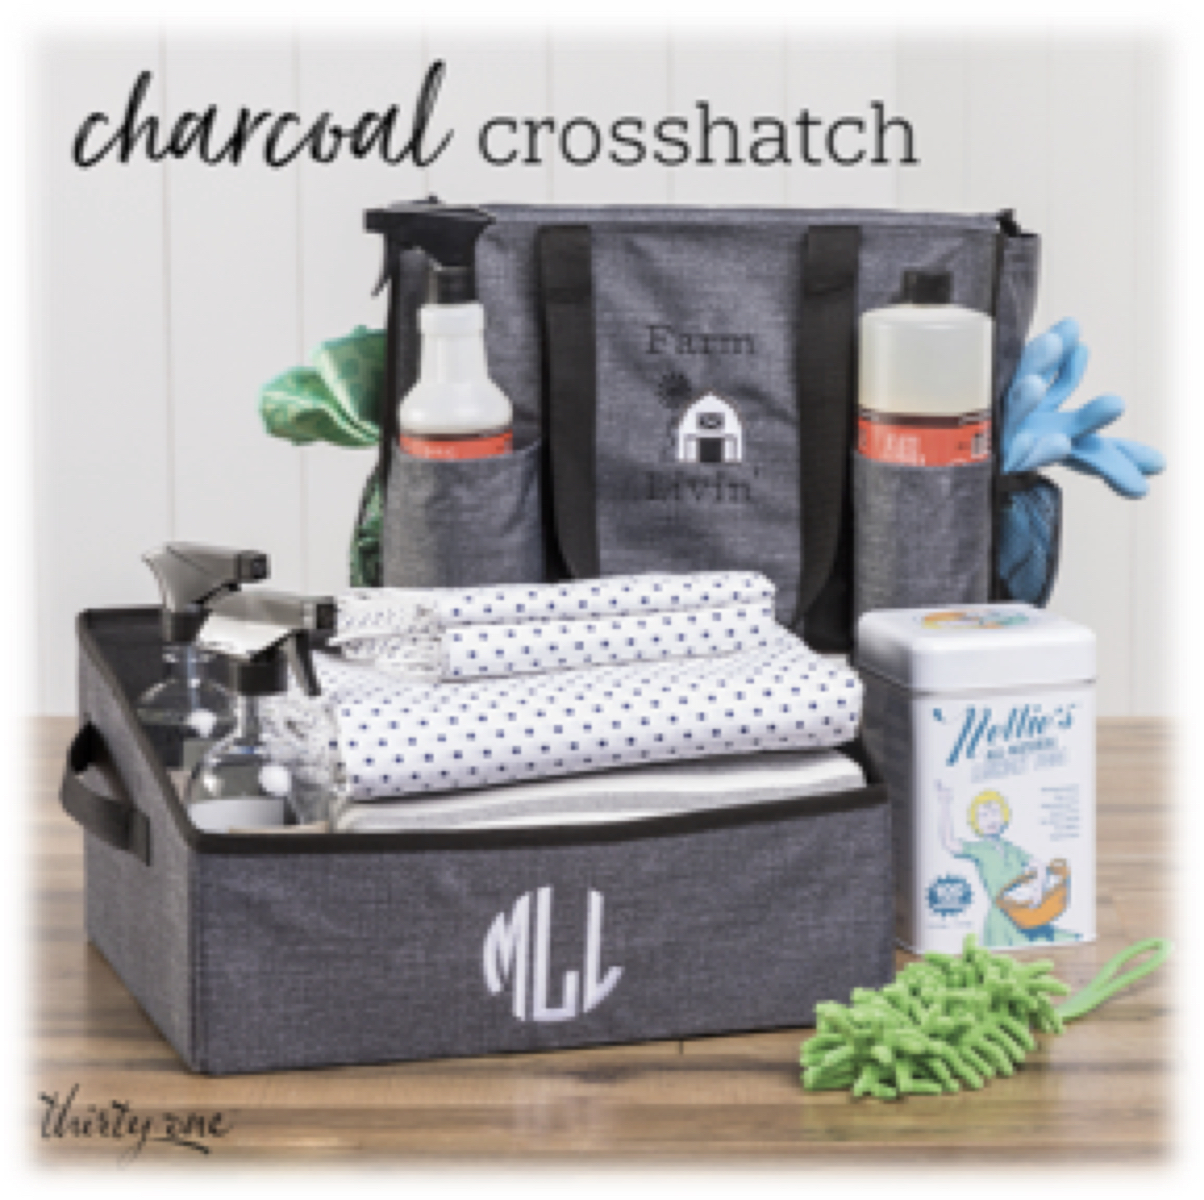 Thirty-One Gifts – Charcoal Crosshatch